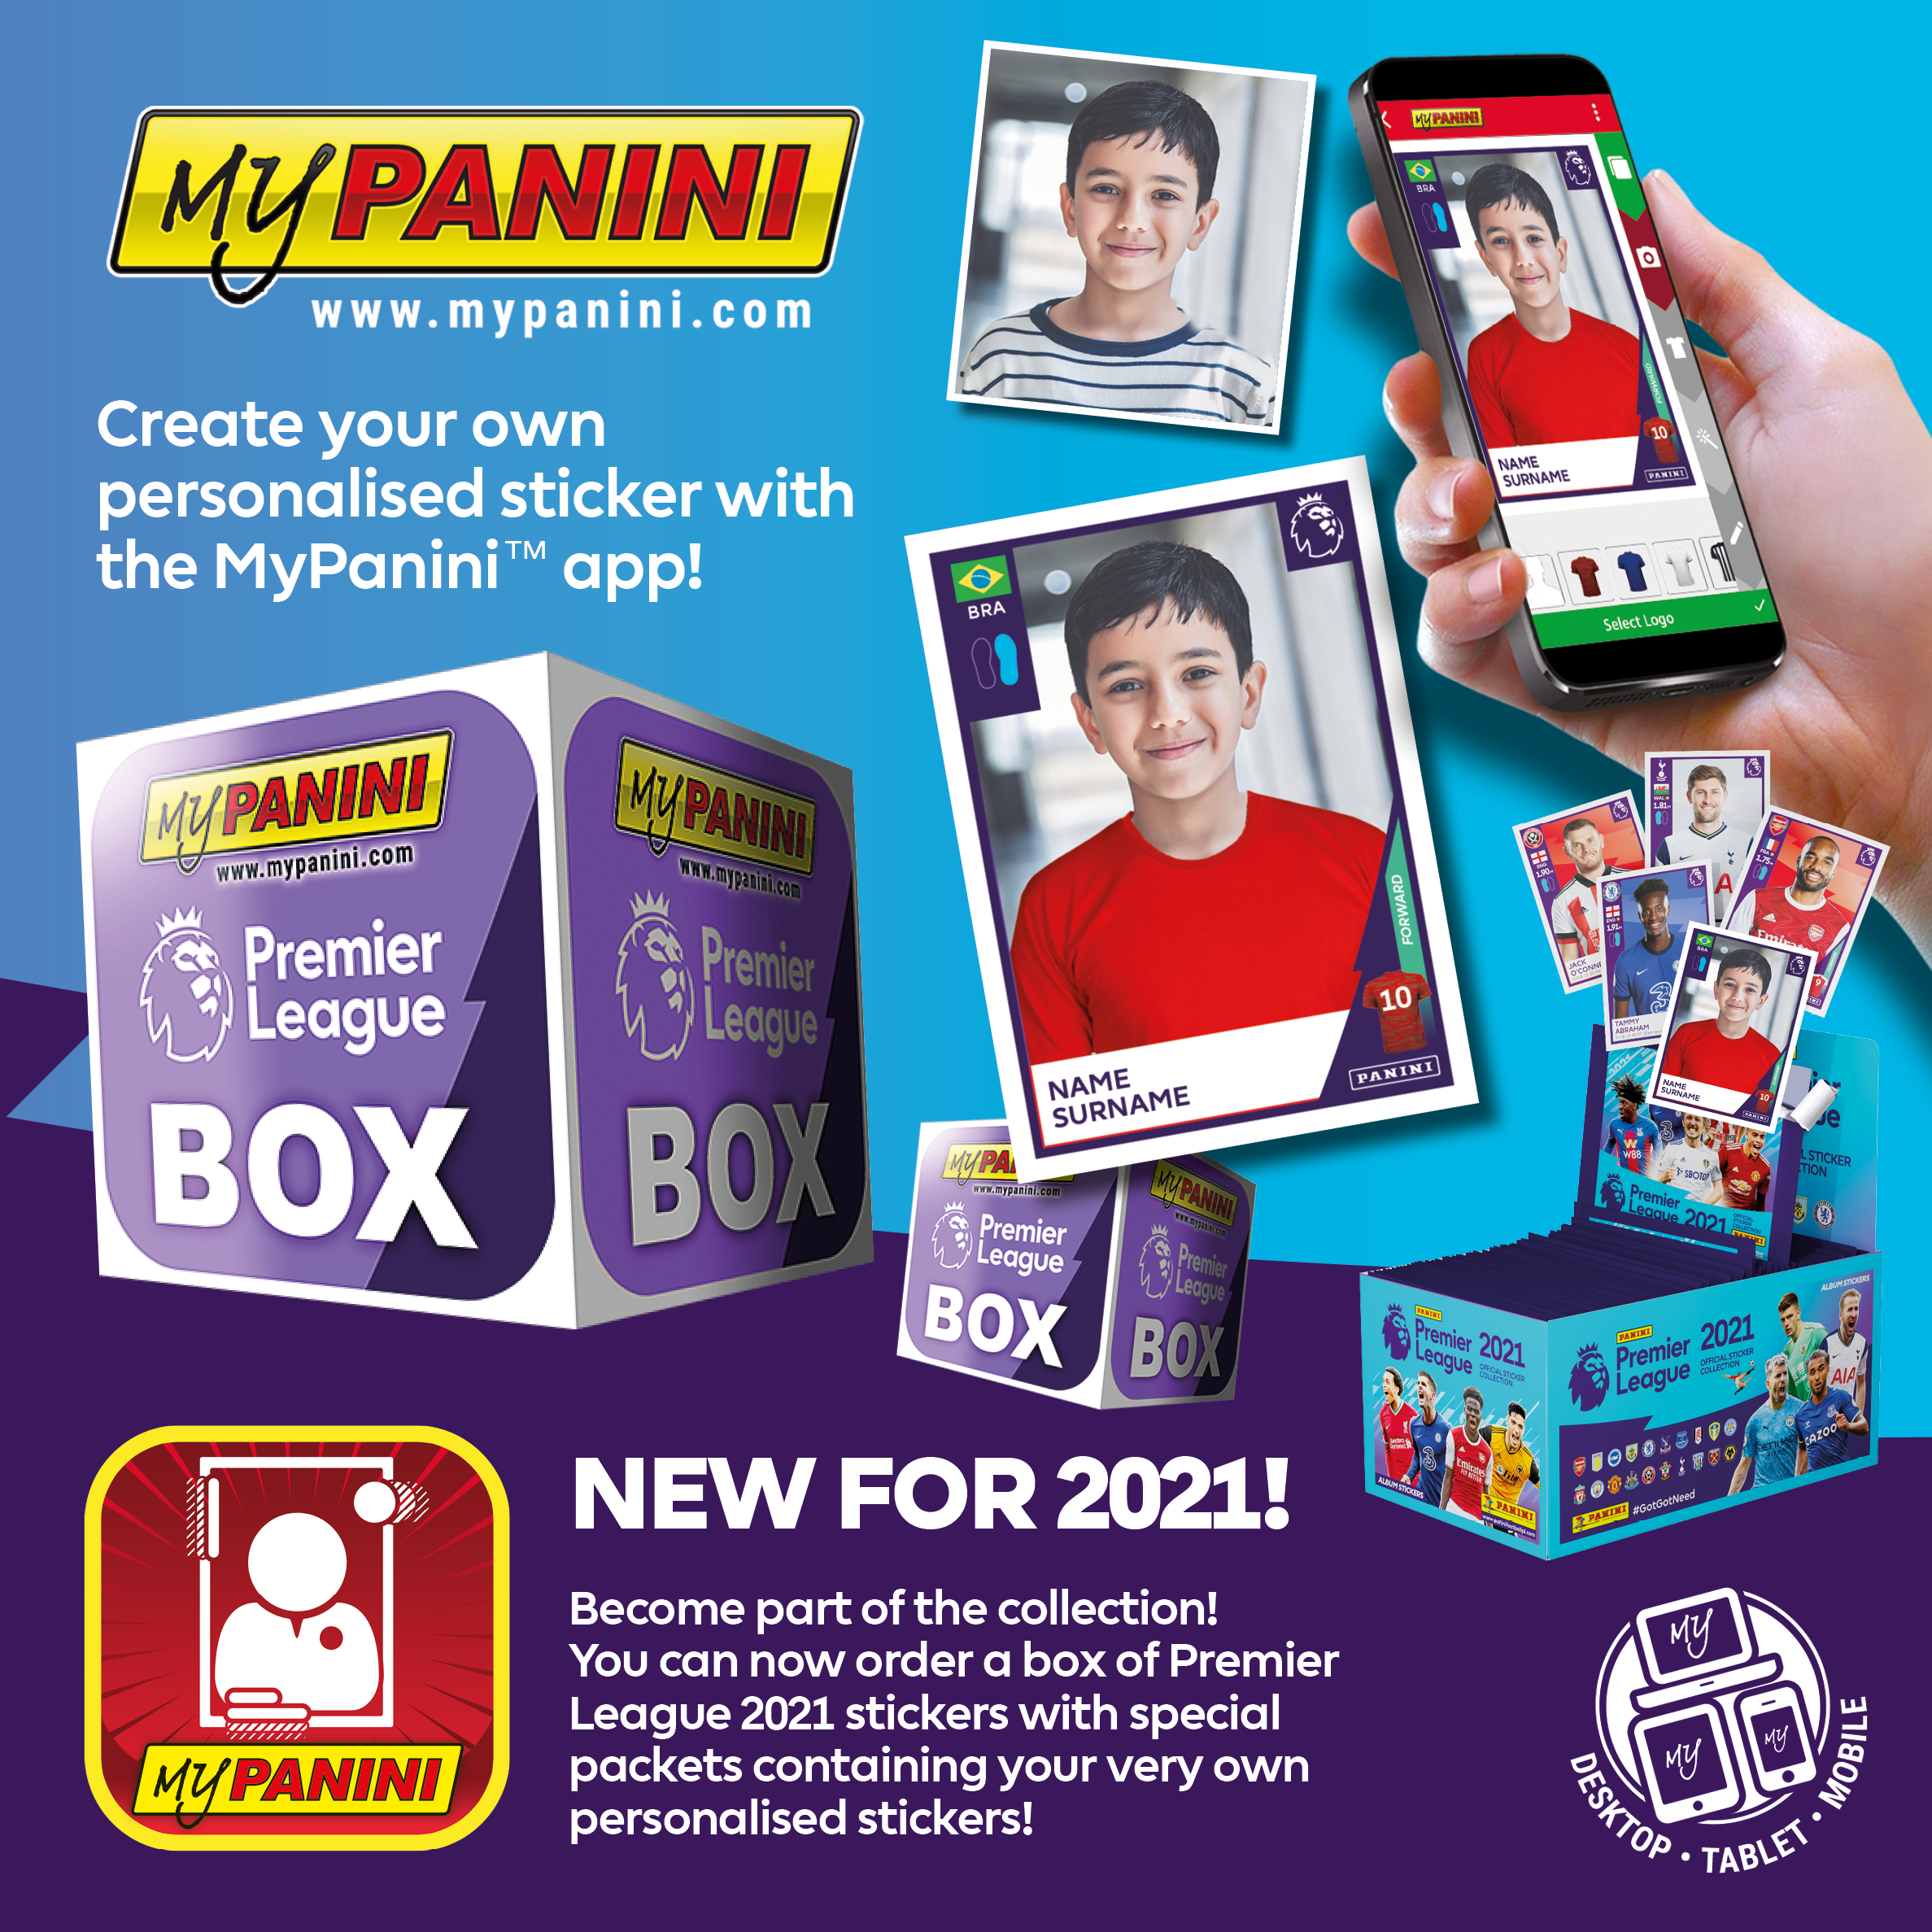 Create your own personalised sticker and be part of the Premier League 2021 Official Sticker Collection! www.mypanini.com